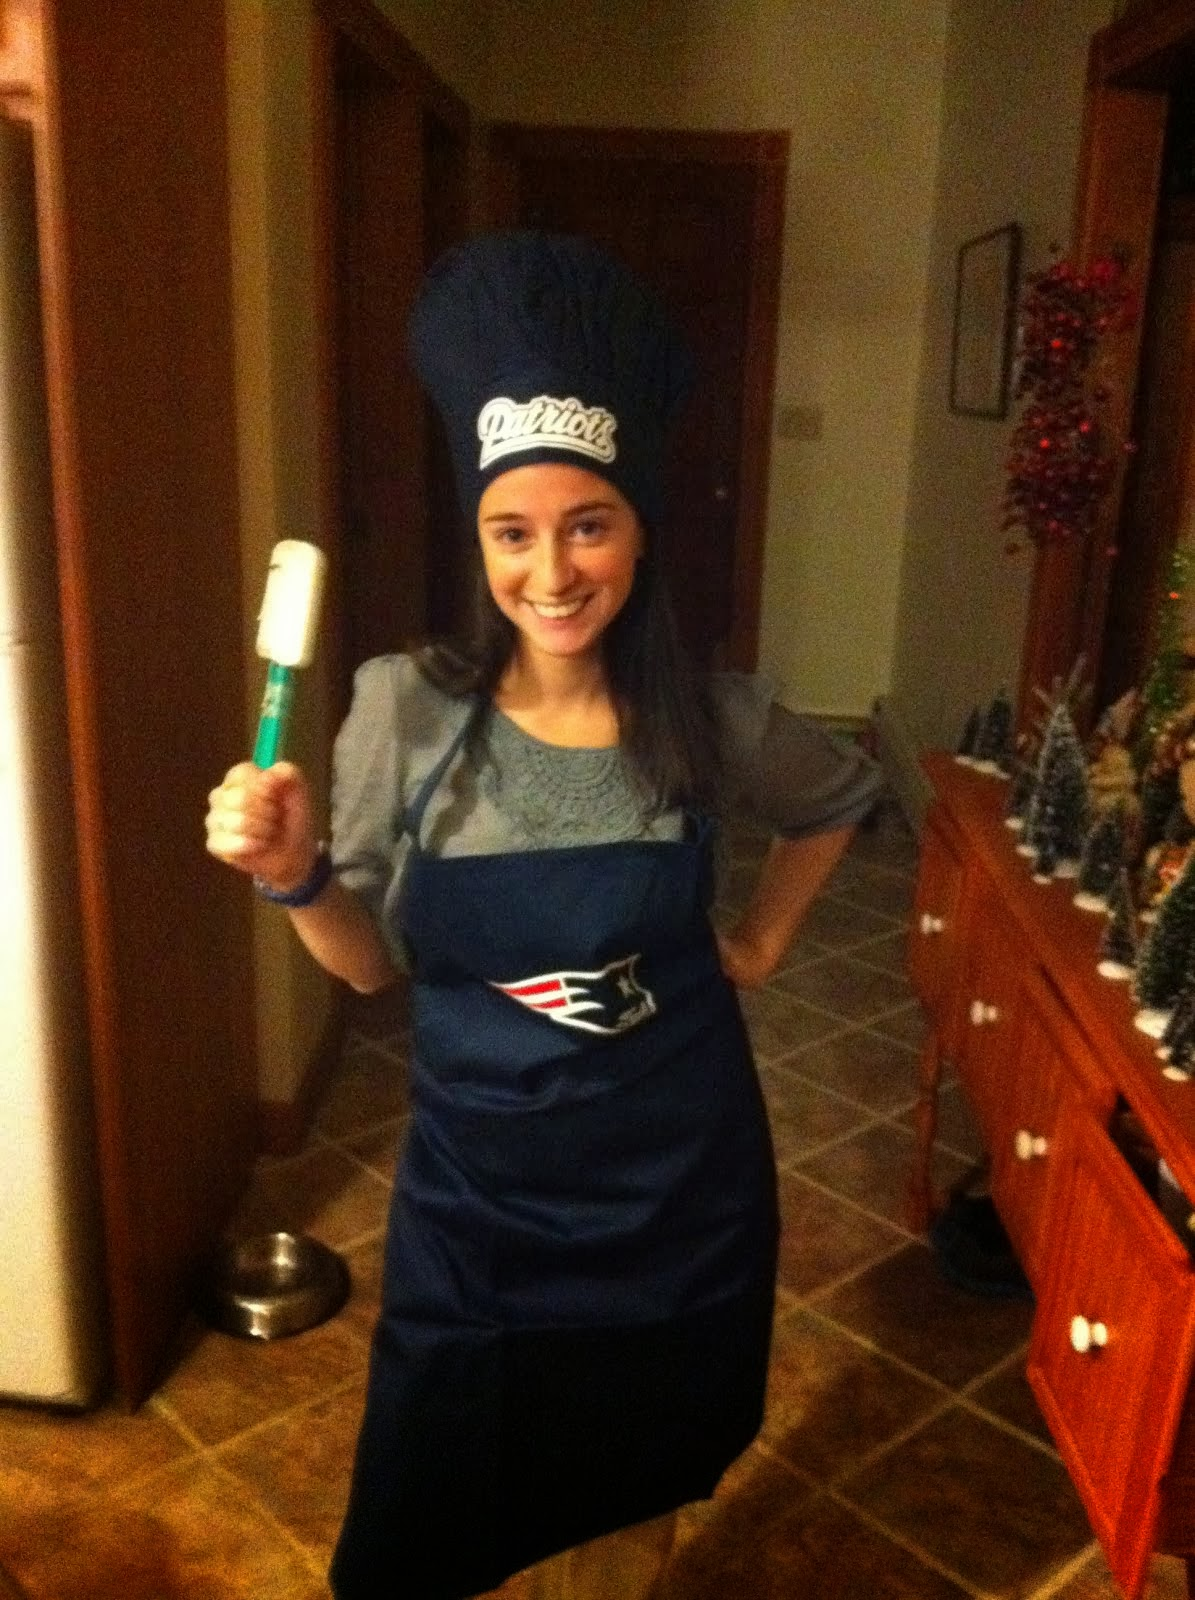 Don't be fooled... love the spatula, hate the Patriots!